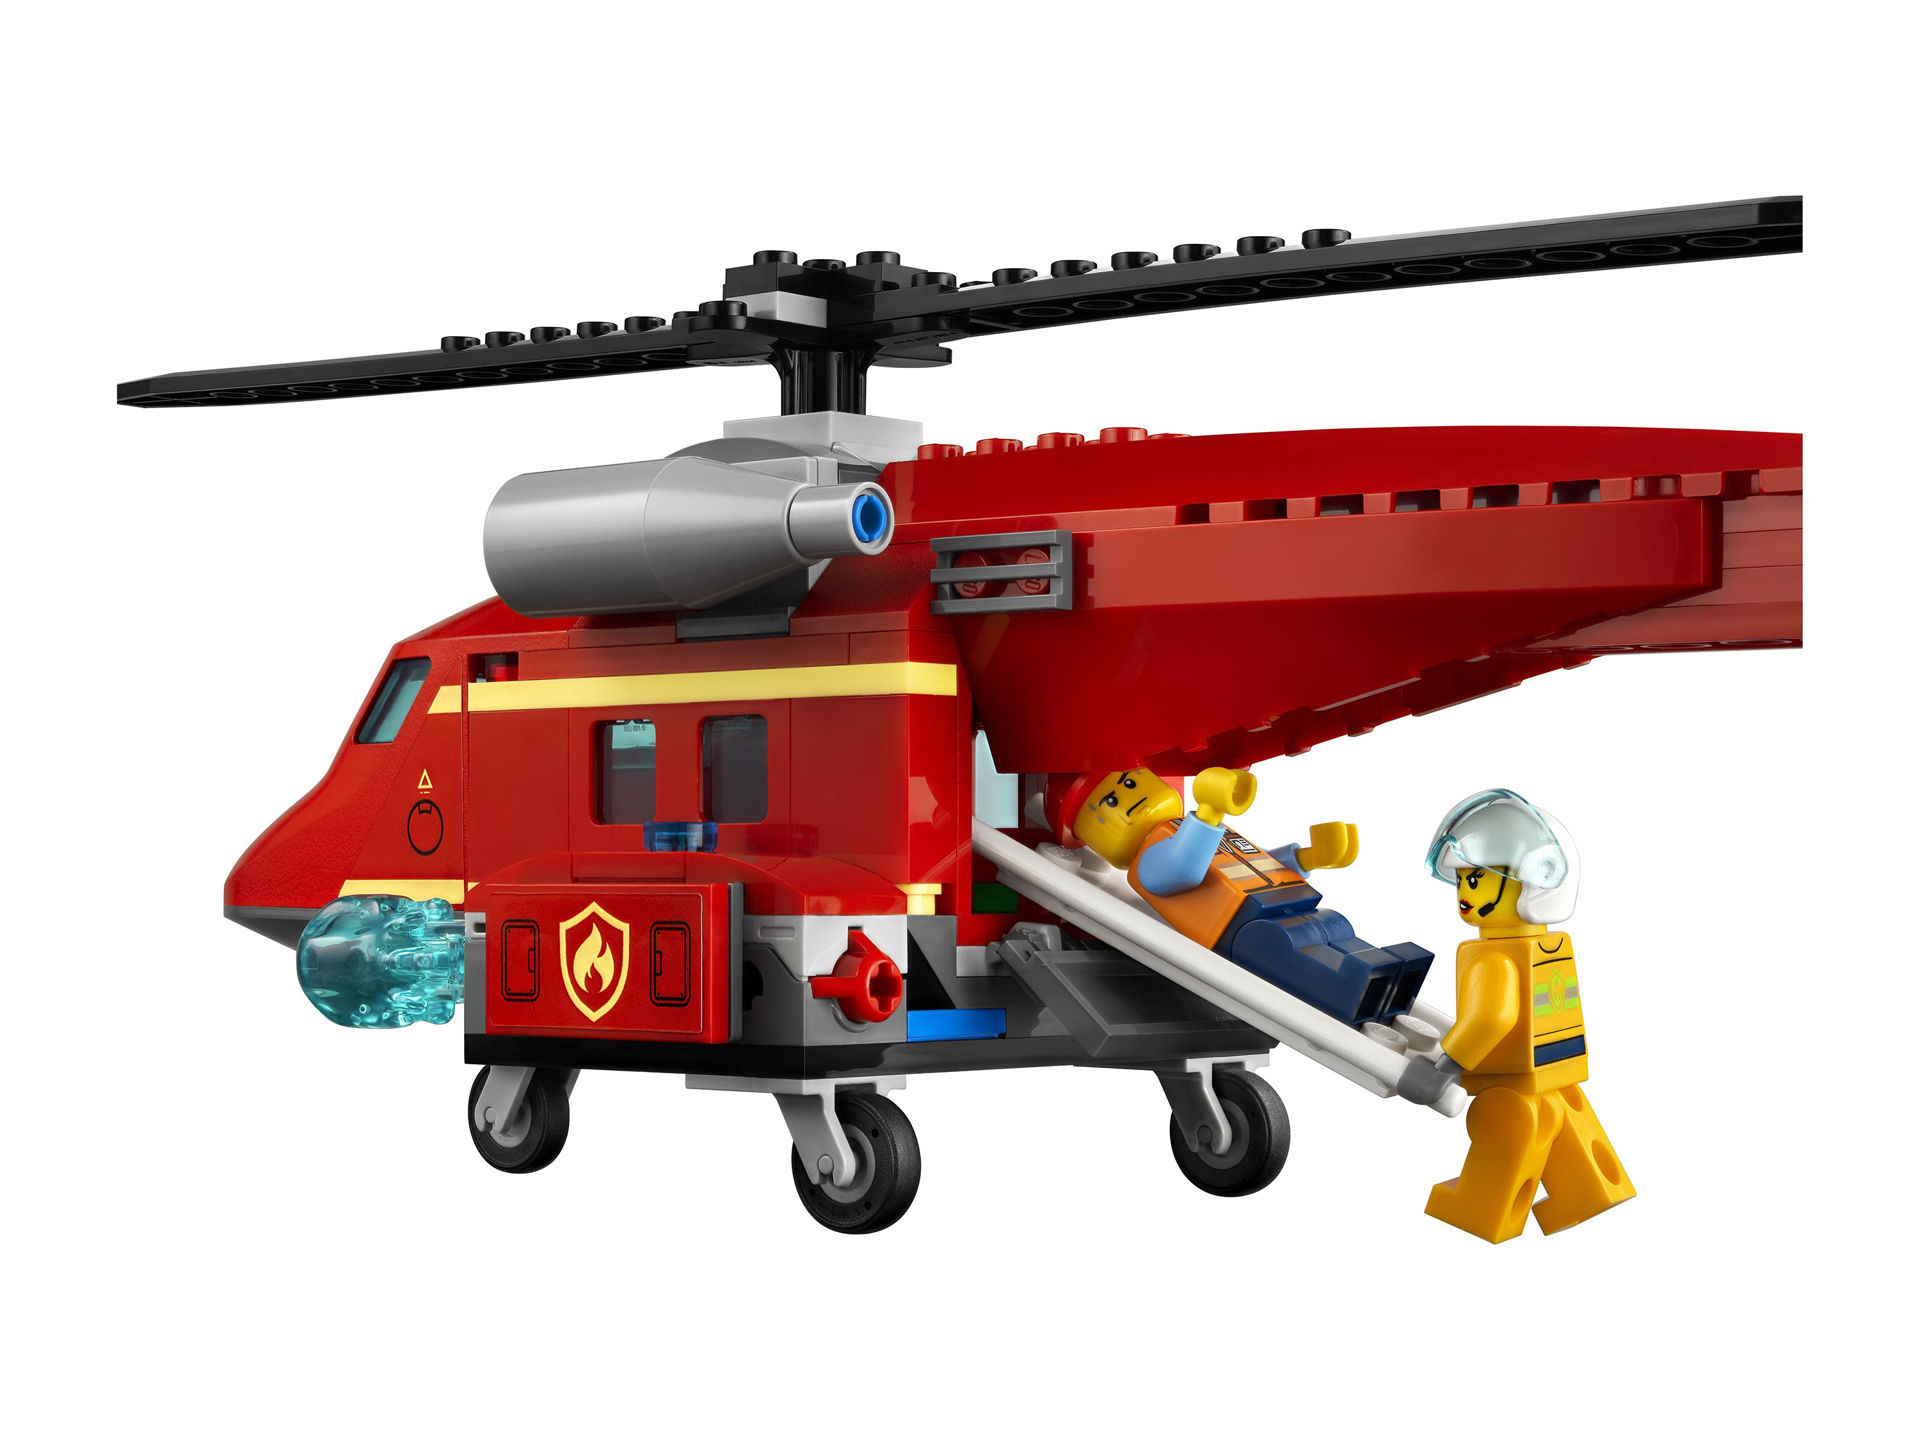 Lego City - Fire Rescue Helicopter 60281